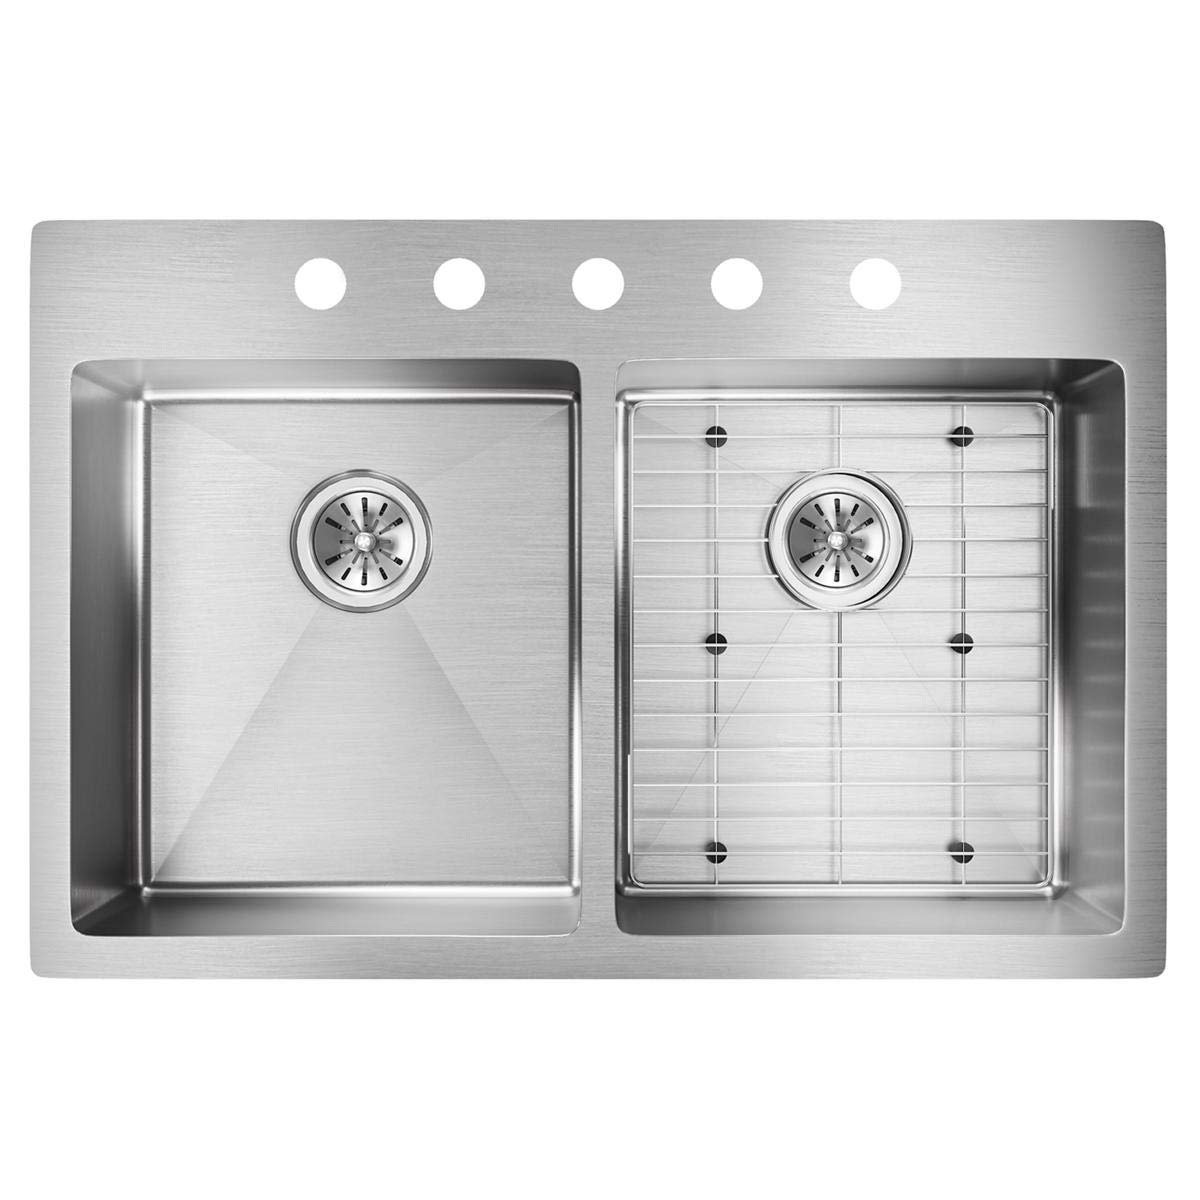 Elkay Crosstown ECTSR33229TBG5 Equal Double Bowl Dual Mount Stainless Steel Sink Kit